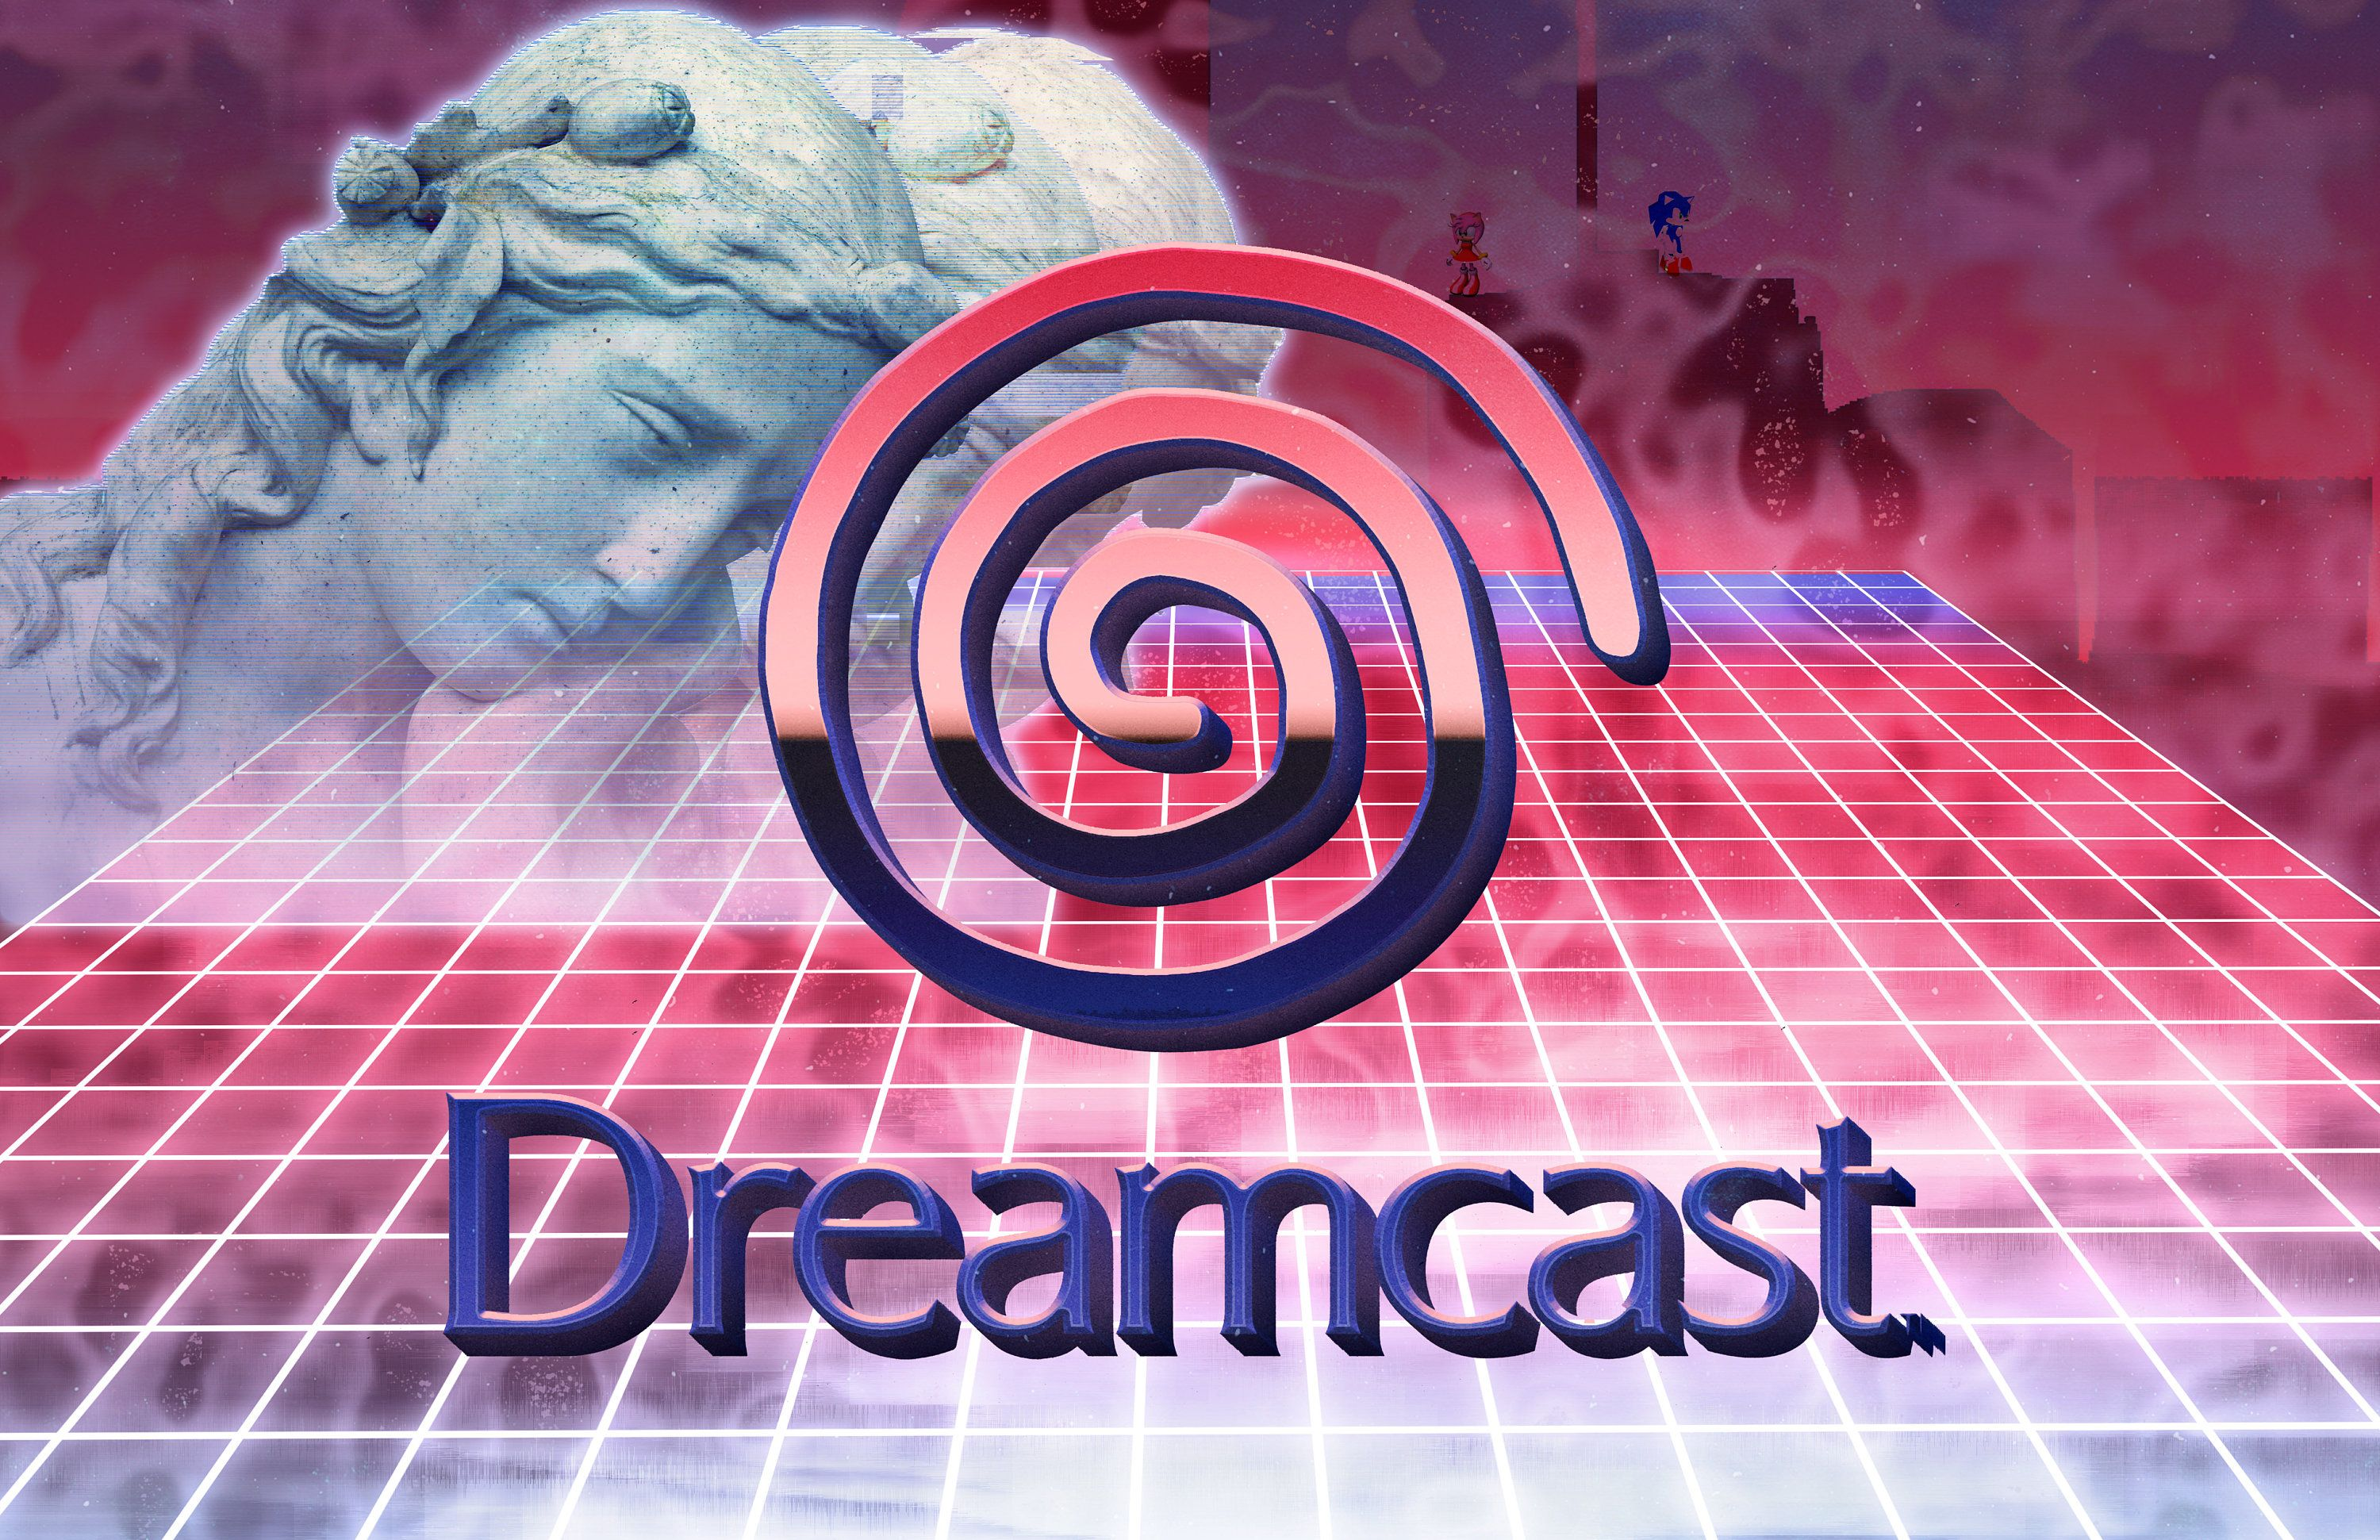 Vaporwave Dreamcast Print Different Sizes Etsy Vaporwave Vaporwave Aesthetic Print